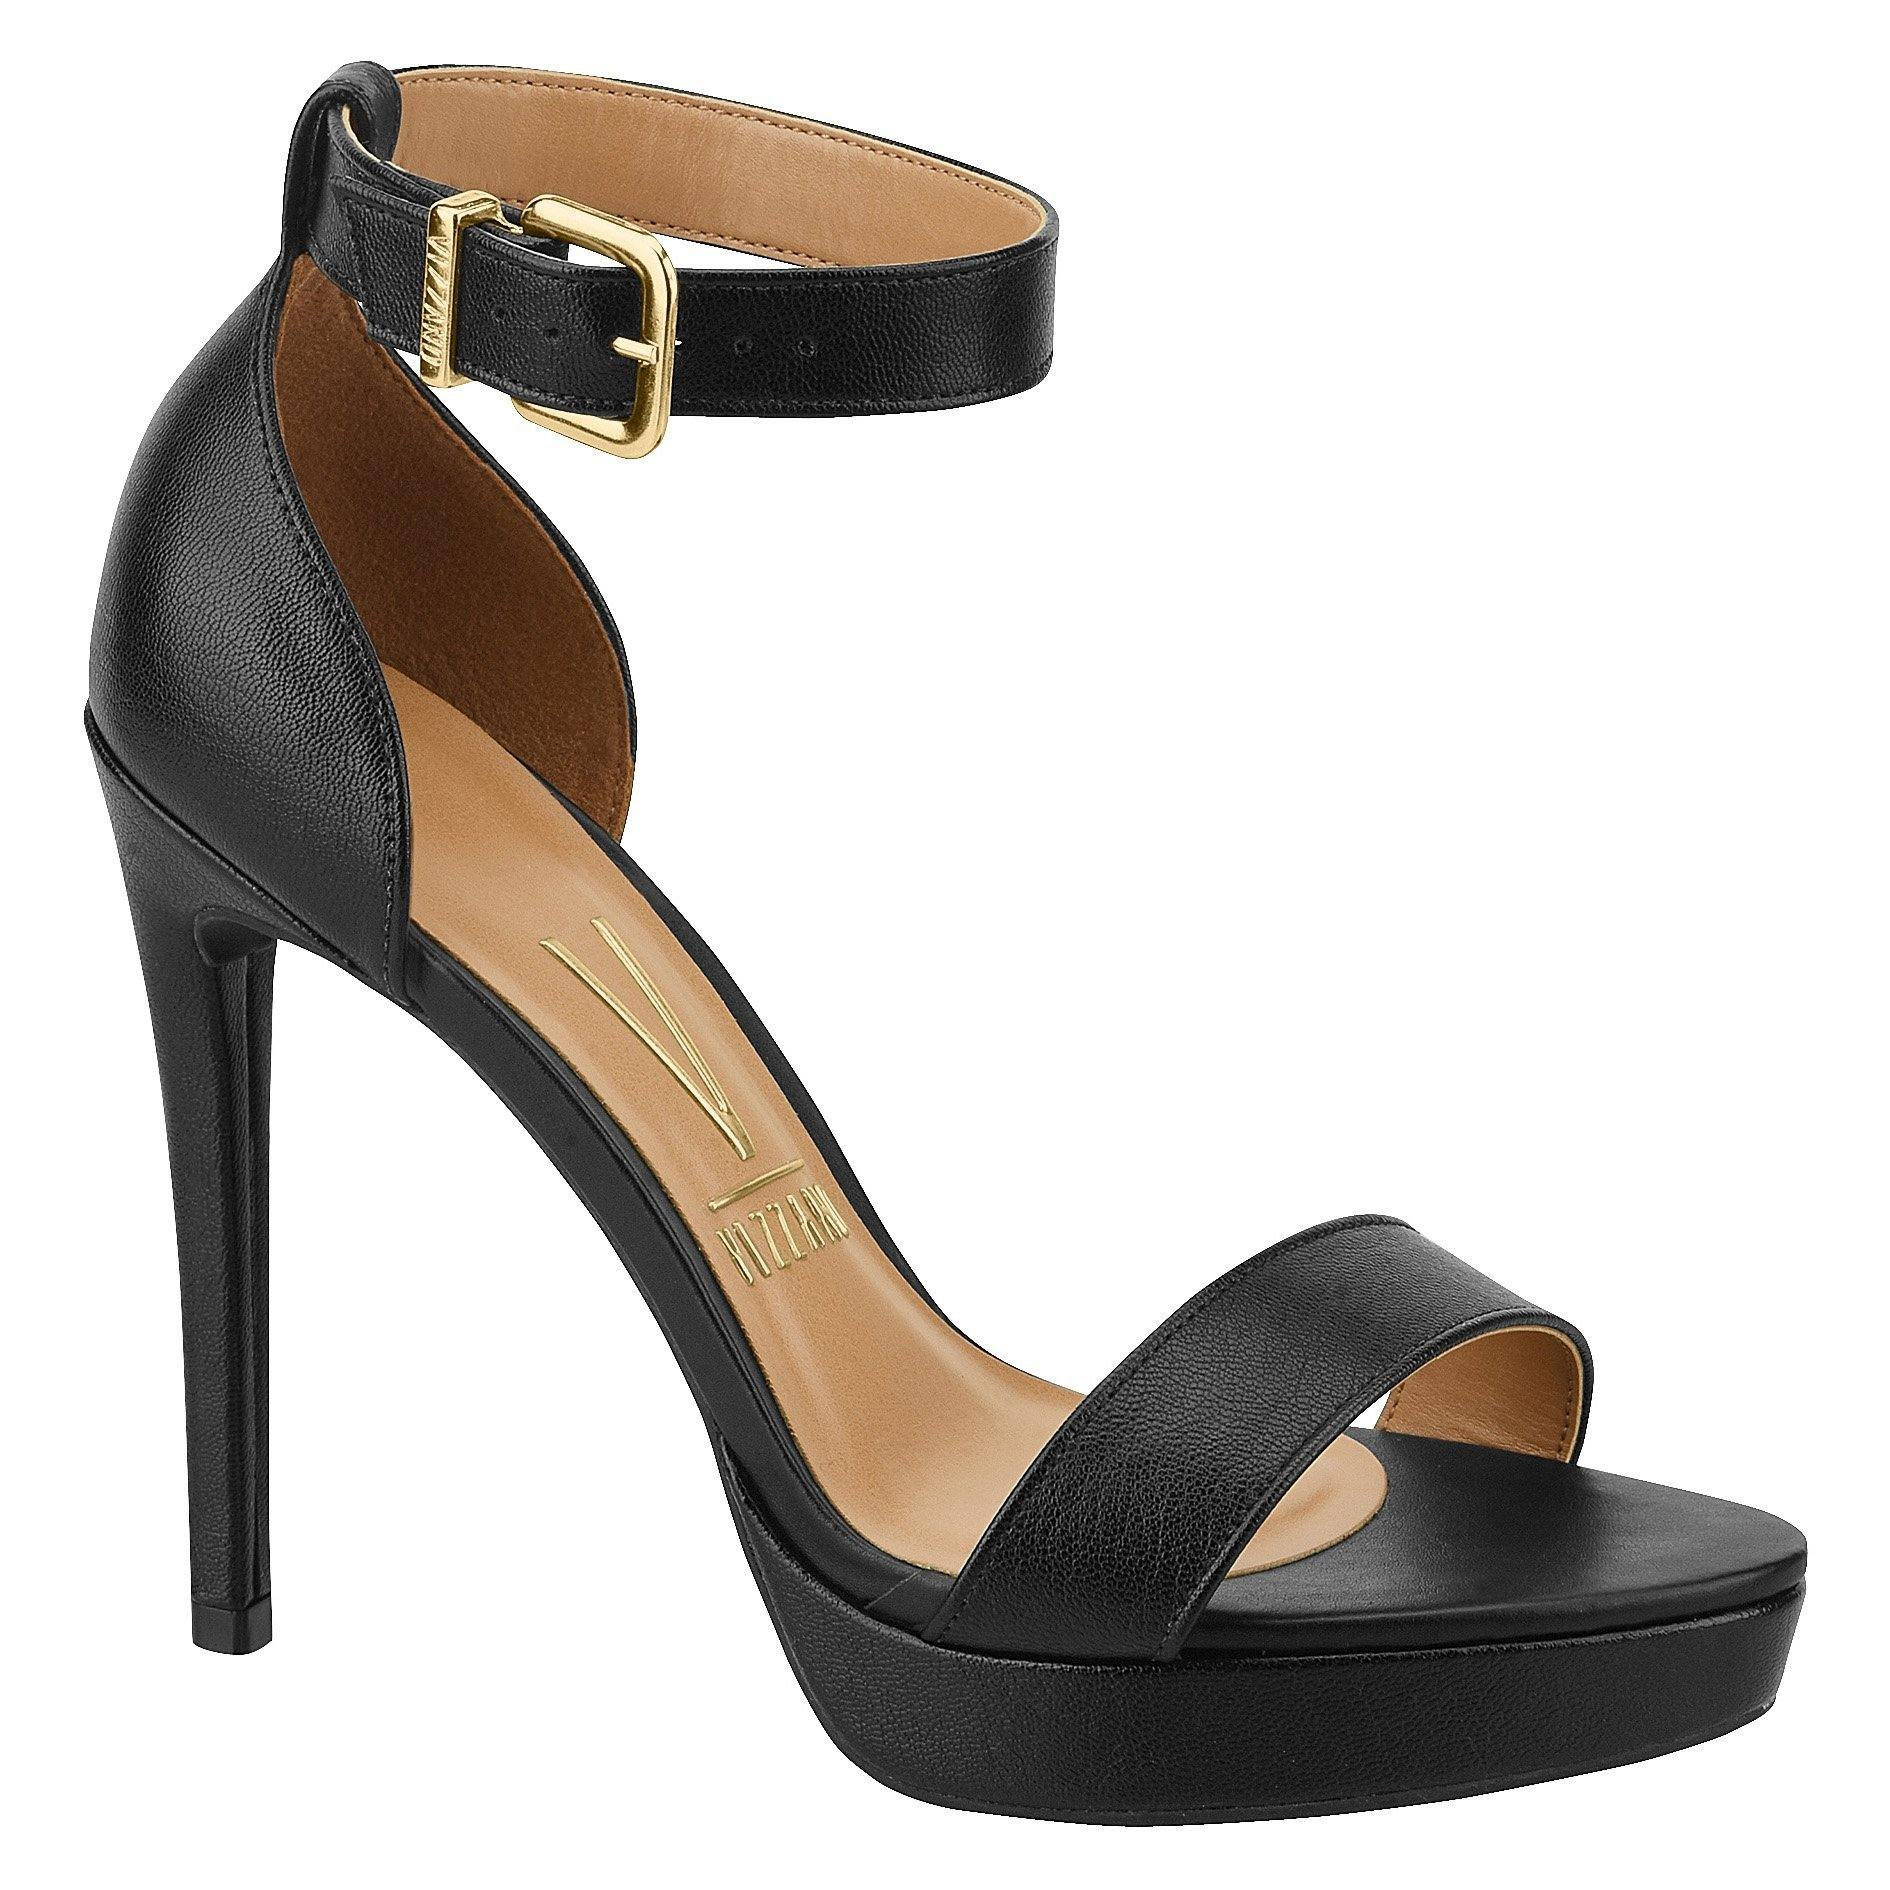 Vizzano 6326-108 High Heel Sandal in Black Napa